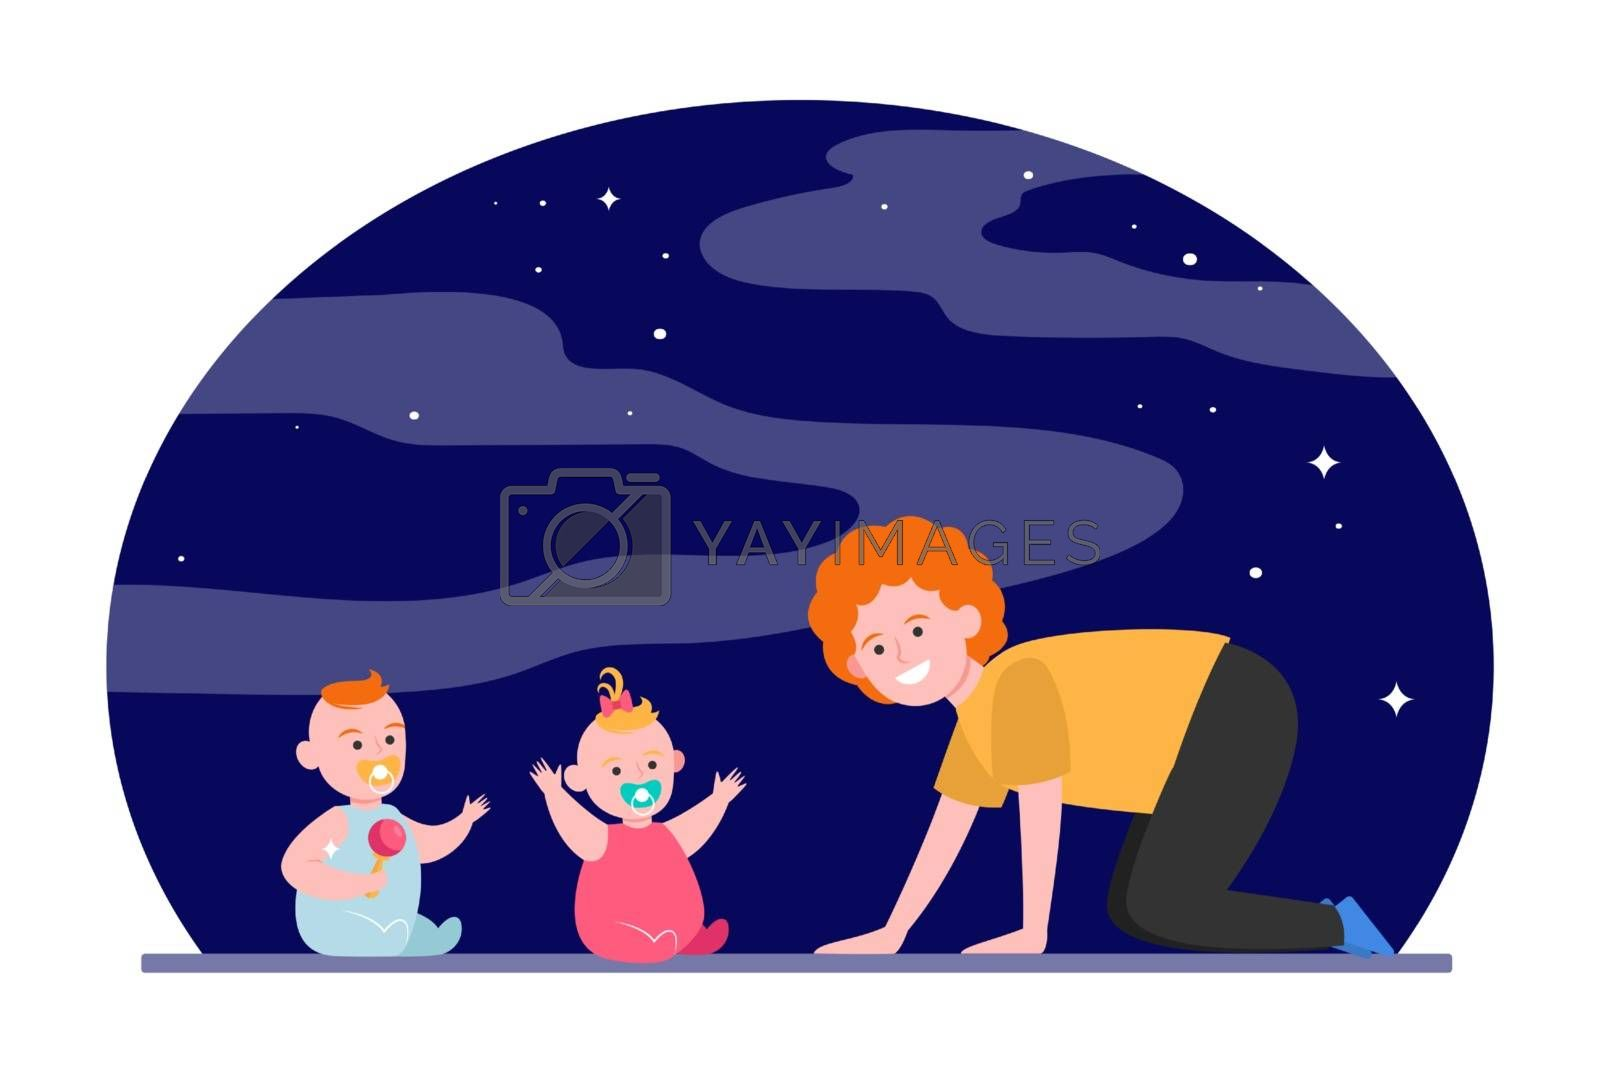 Cheerful mom playing with twin babies. Toys, babysitting, baby care flat vector illustration. Childhood, childcare, parenthood concept for banner, website design or landing web page